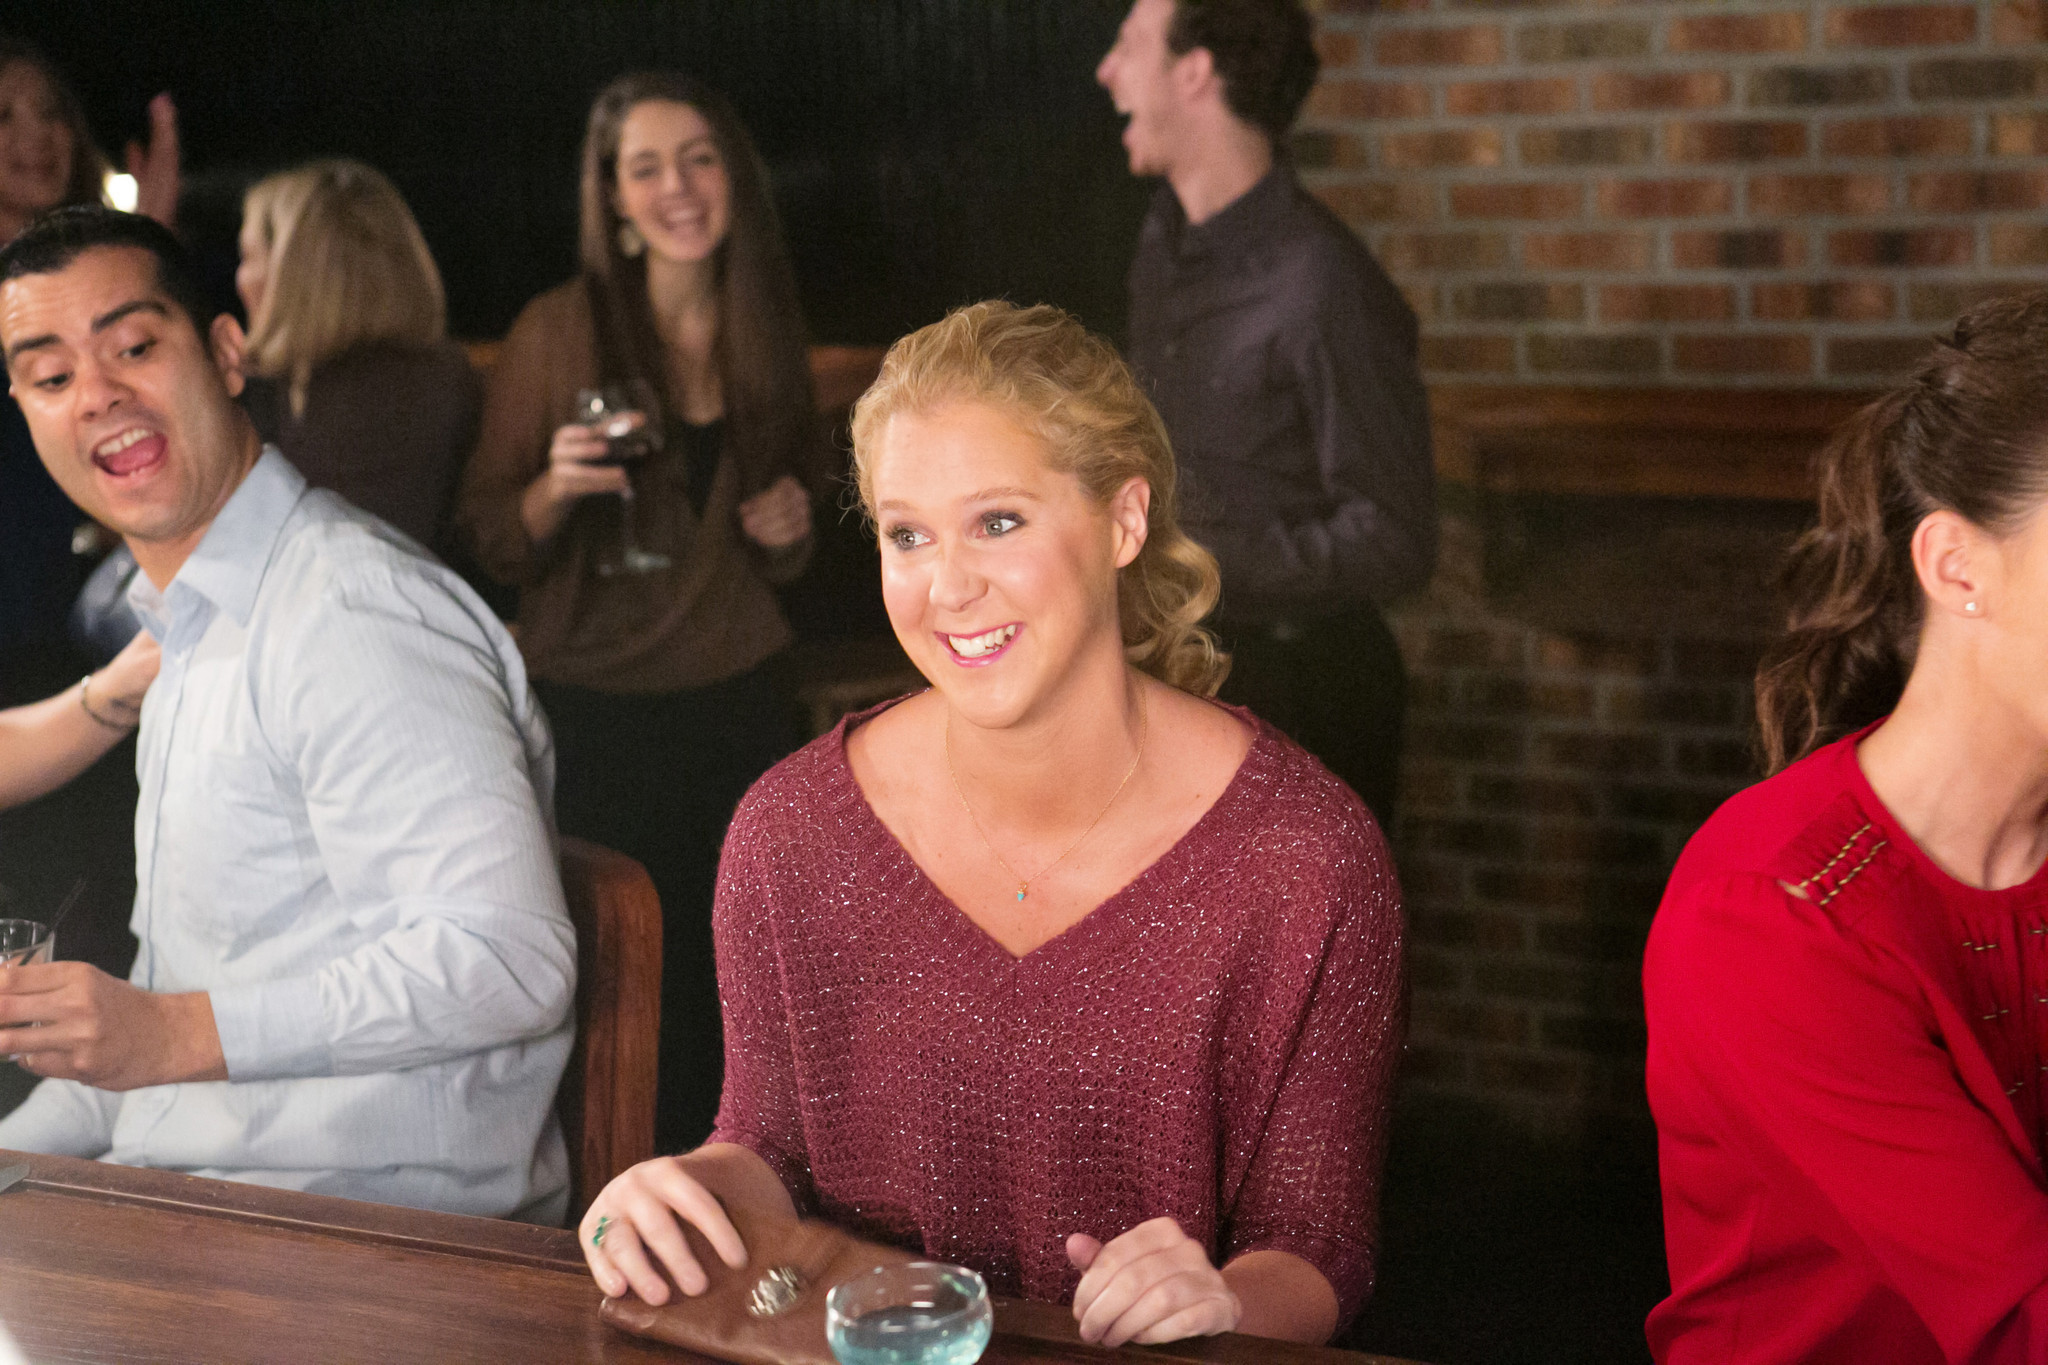 Comedy Central renews 'Inside Amy Schumer' and 'Broad City'